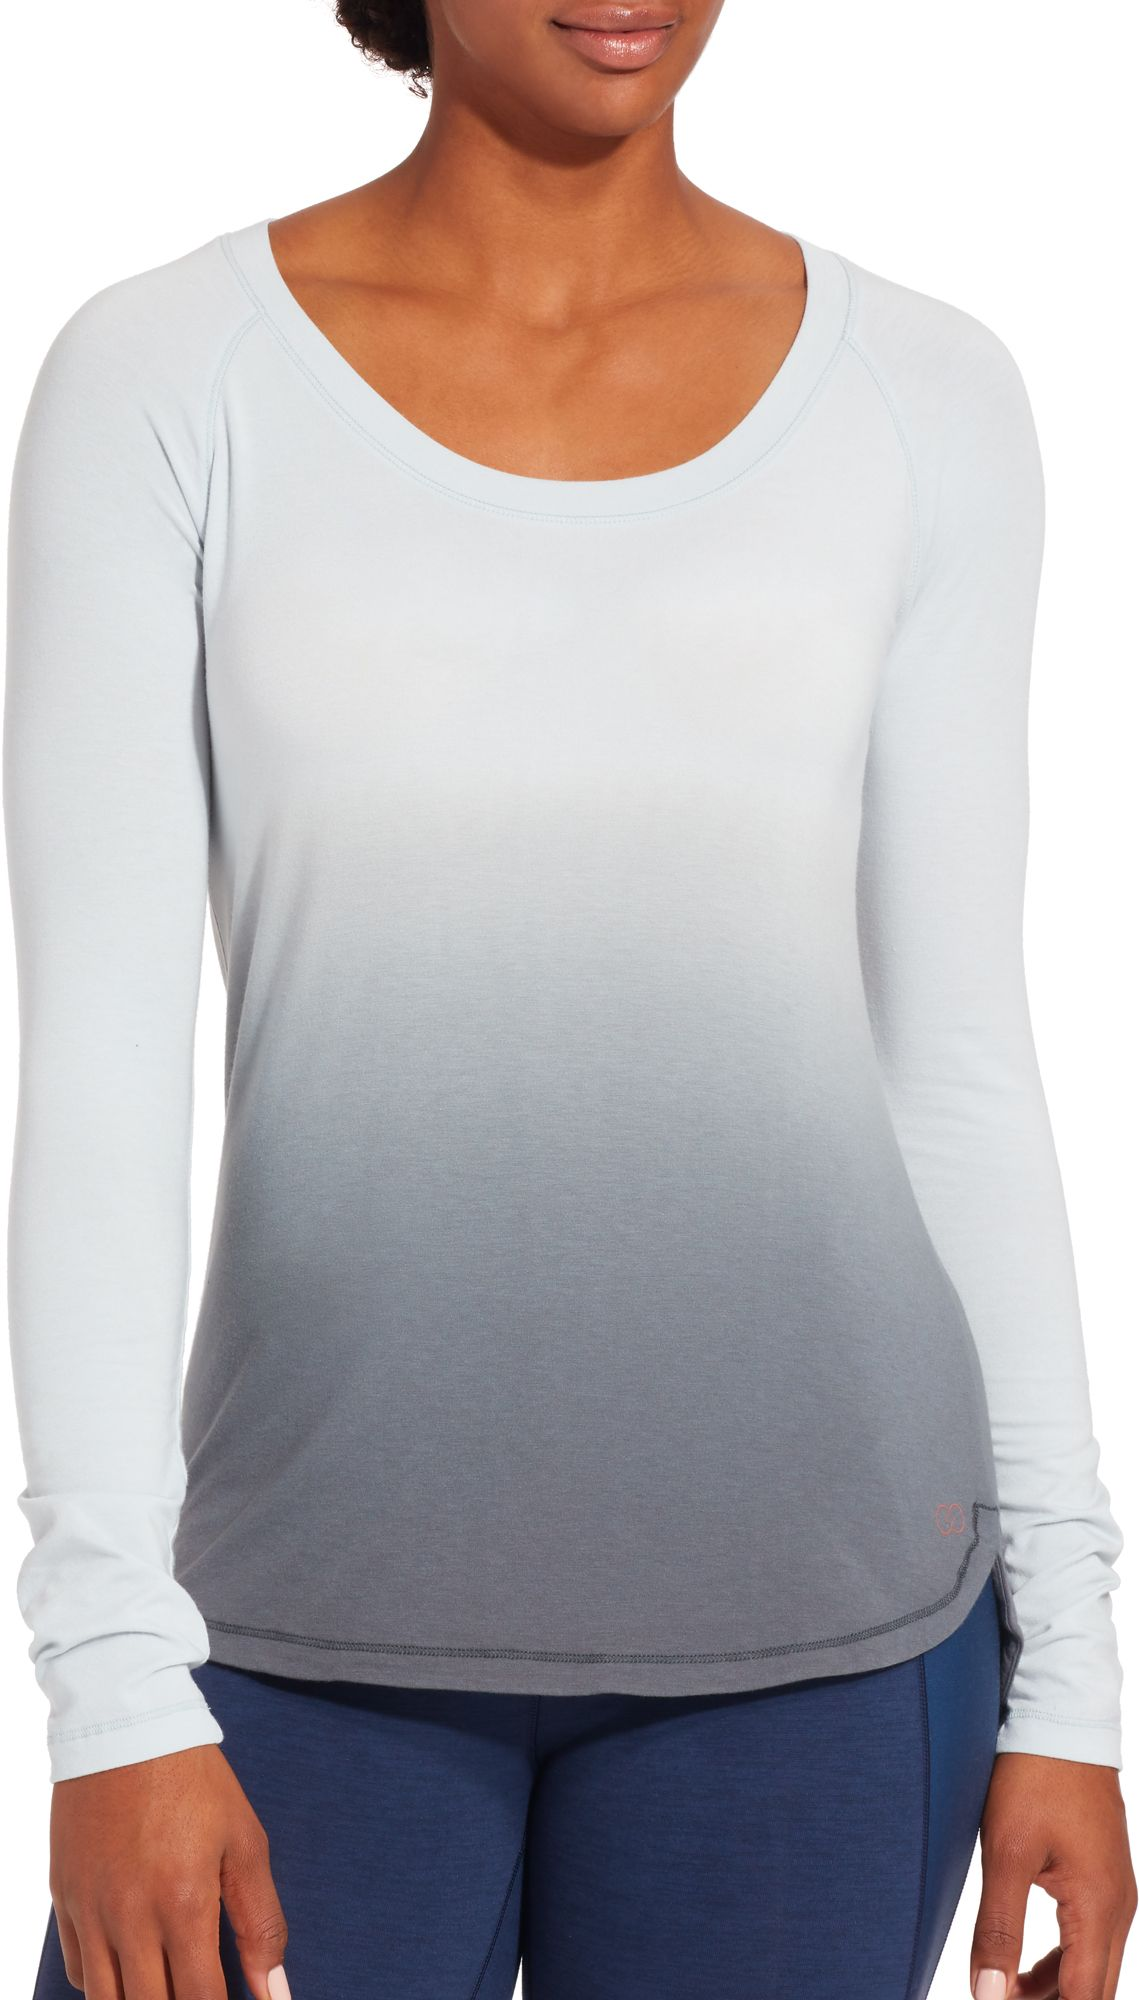 6c2fe43b8 CALIA by Carrie Underwood Women's Flow Everyday Long Sleeve Shirt | Fitness  Apparel for Your Life.Proposition 65 warning iconProposition 65 warning icon